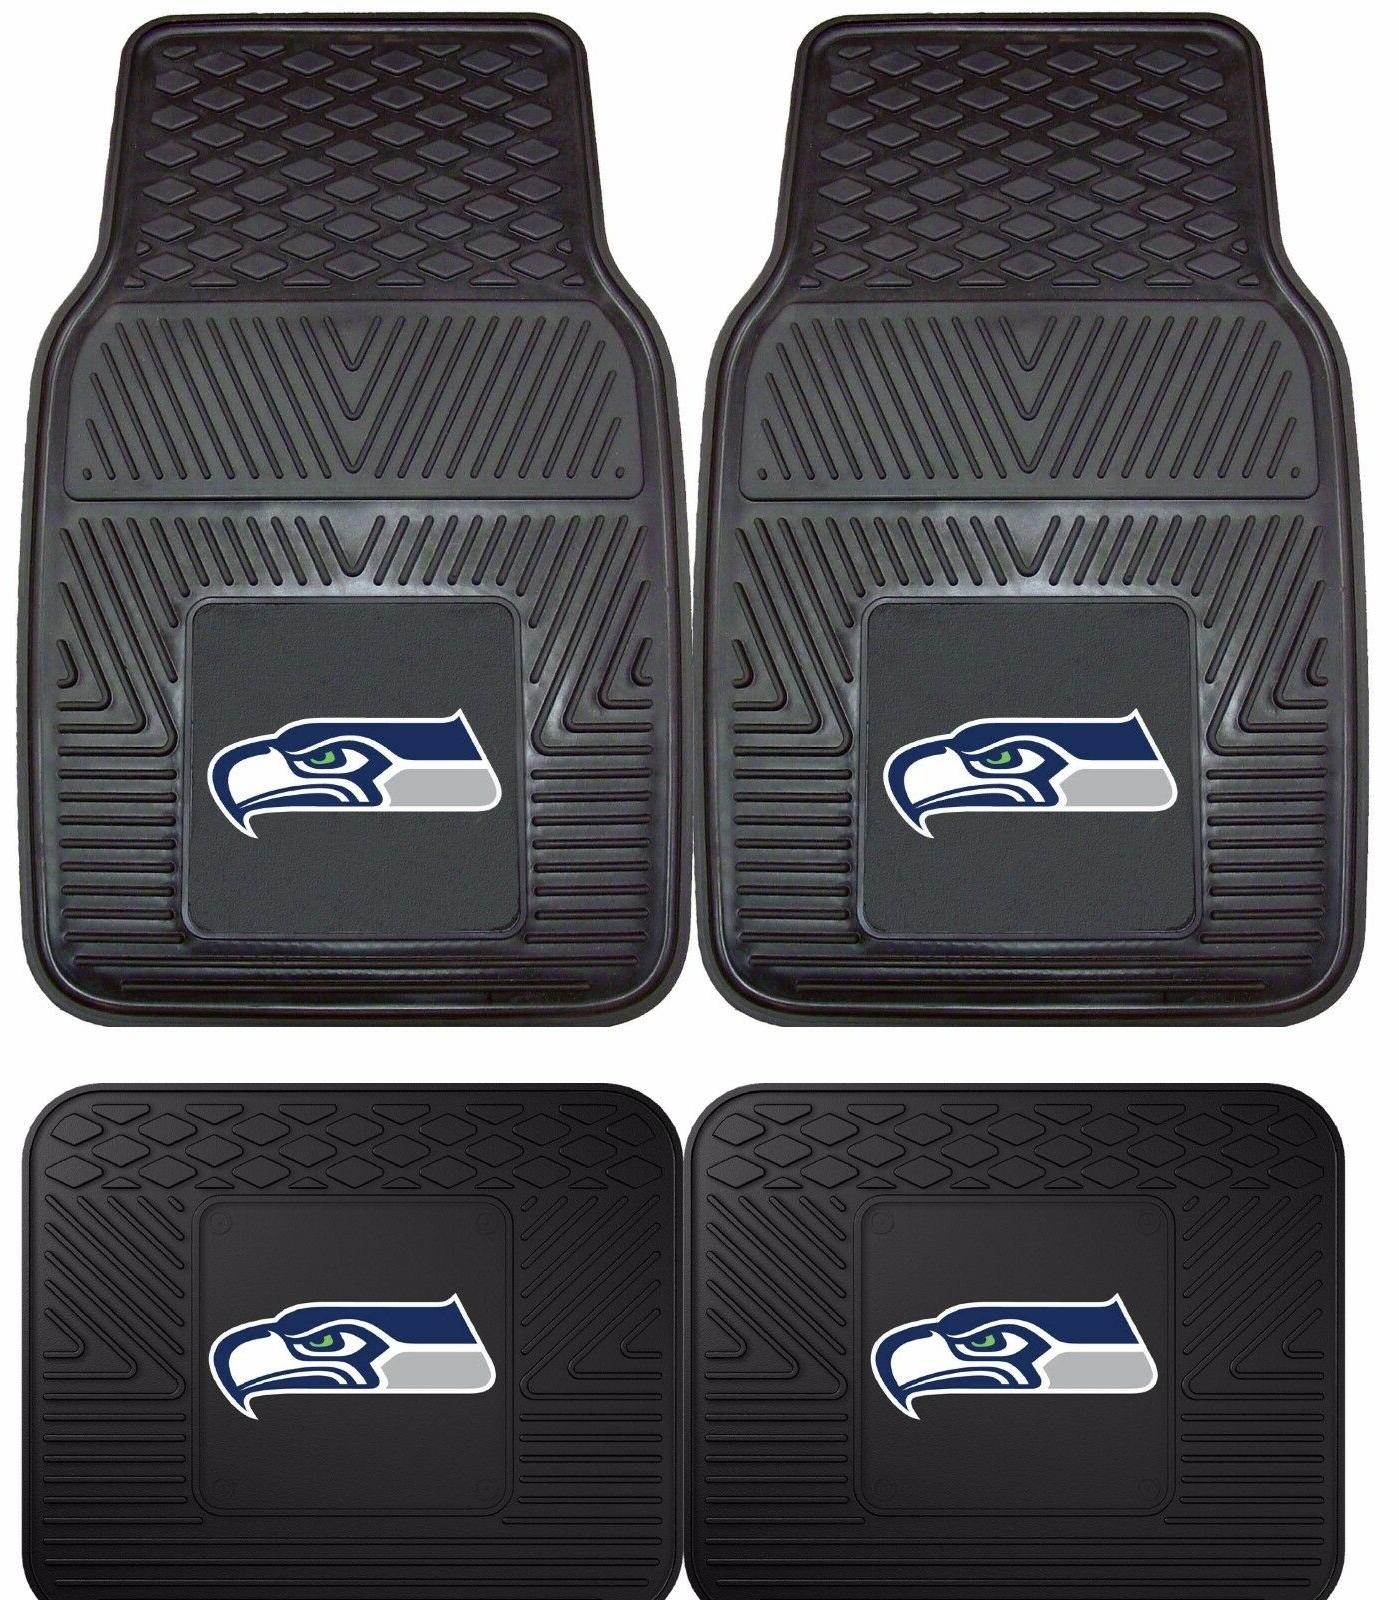 Seattle Seahawks Heavy Duty Floor Mats 2 & 4 Pc Sets for Car